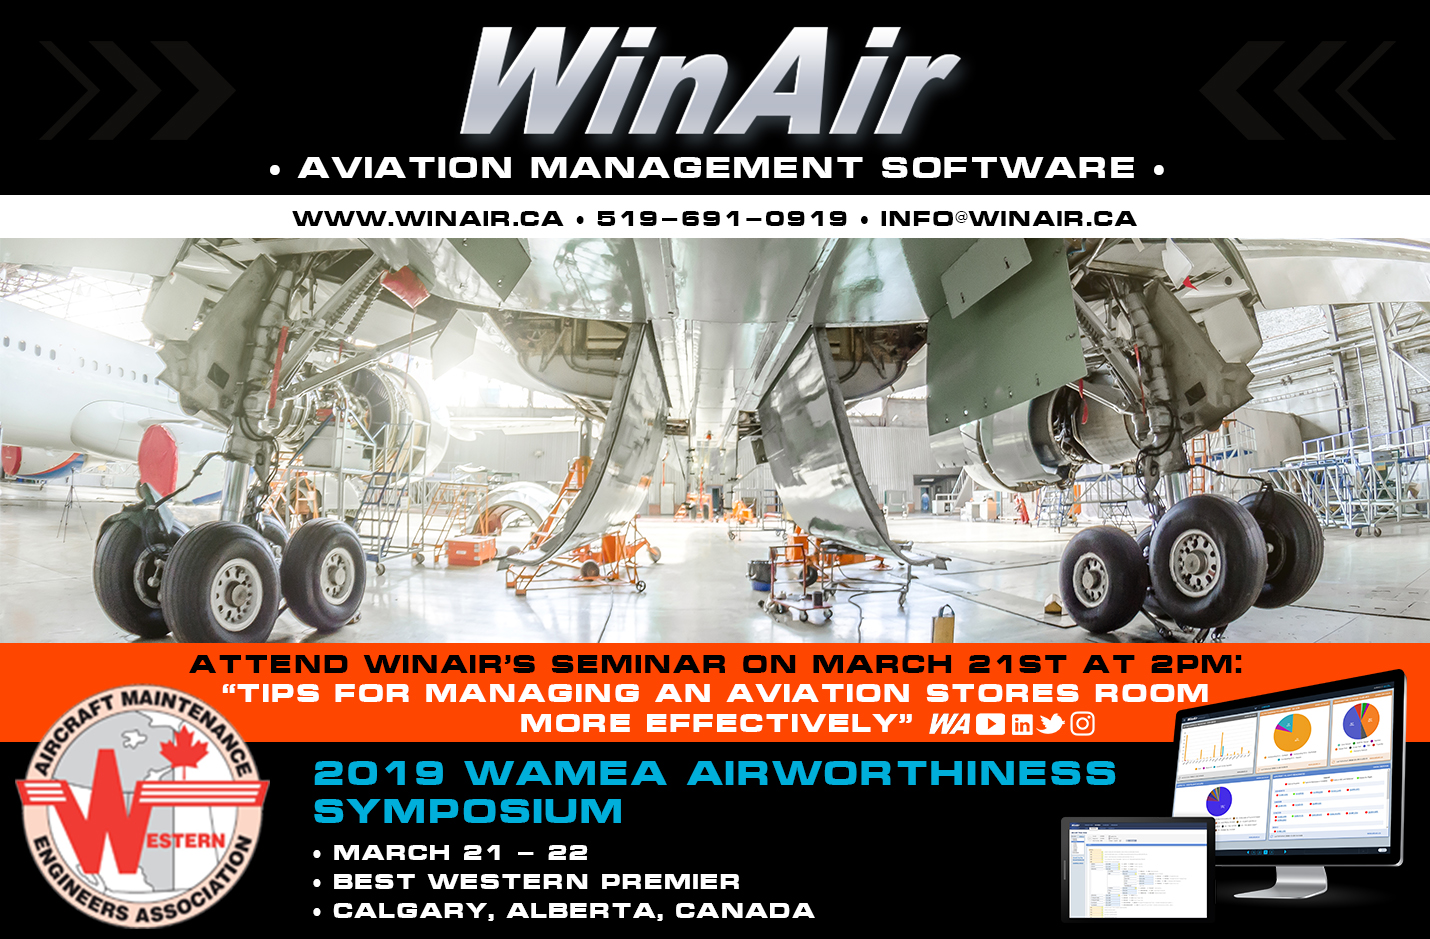 WinAir to Speak and Exhibit at Western AME Association (WAMEA) Airworthiness Symposium